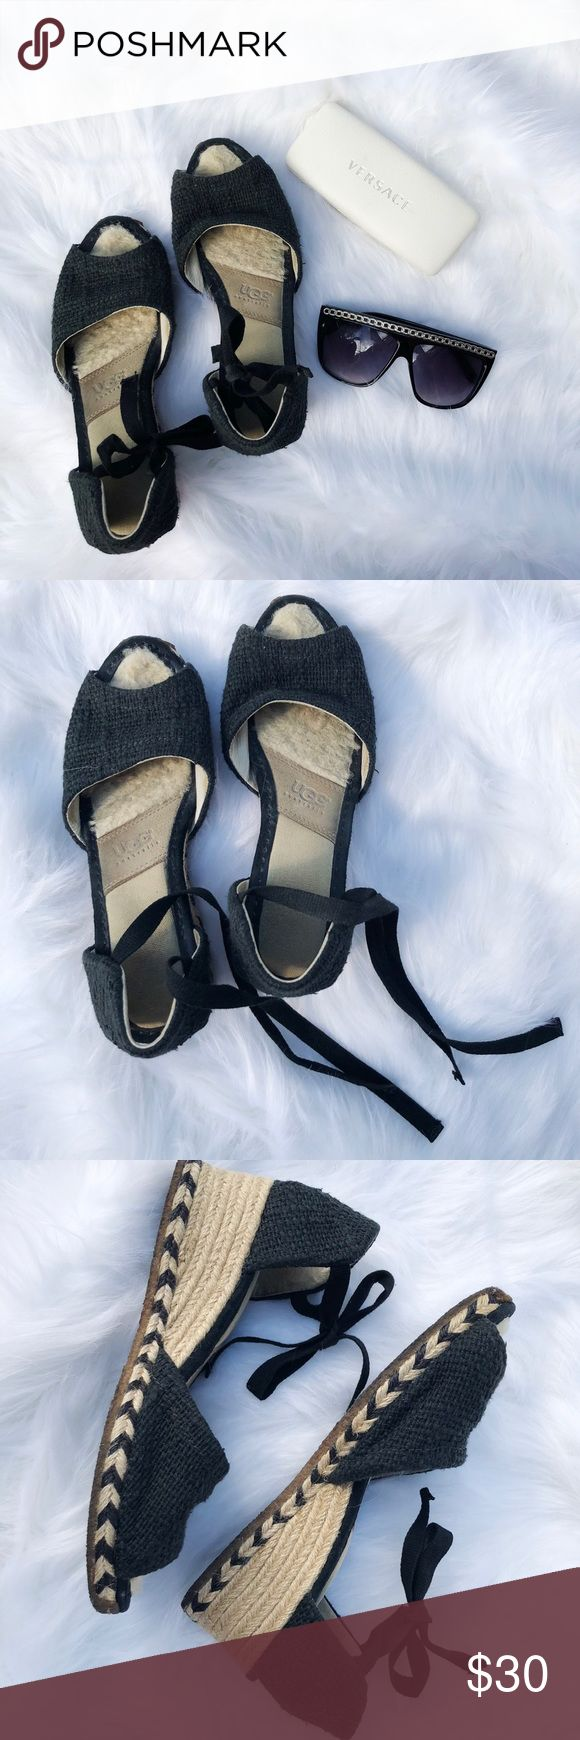 UGG Australia Mar Burlap Espadrille Wedge Sandals Nice looking pair of UGG Mar espadrille style wedge sandals in black textile with leather and genuine sheepskin lined insoles. Ankles tie with black ribbon laces. Gently worn, in great shape. Size 39/Women's 8. UGG Shoes